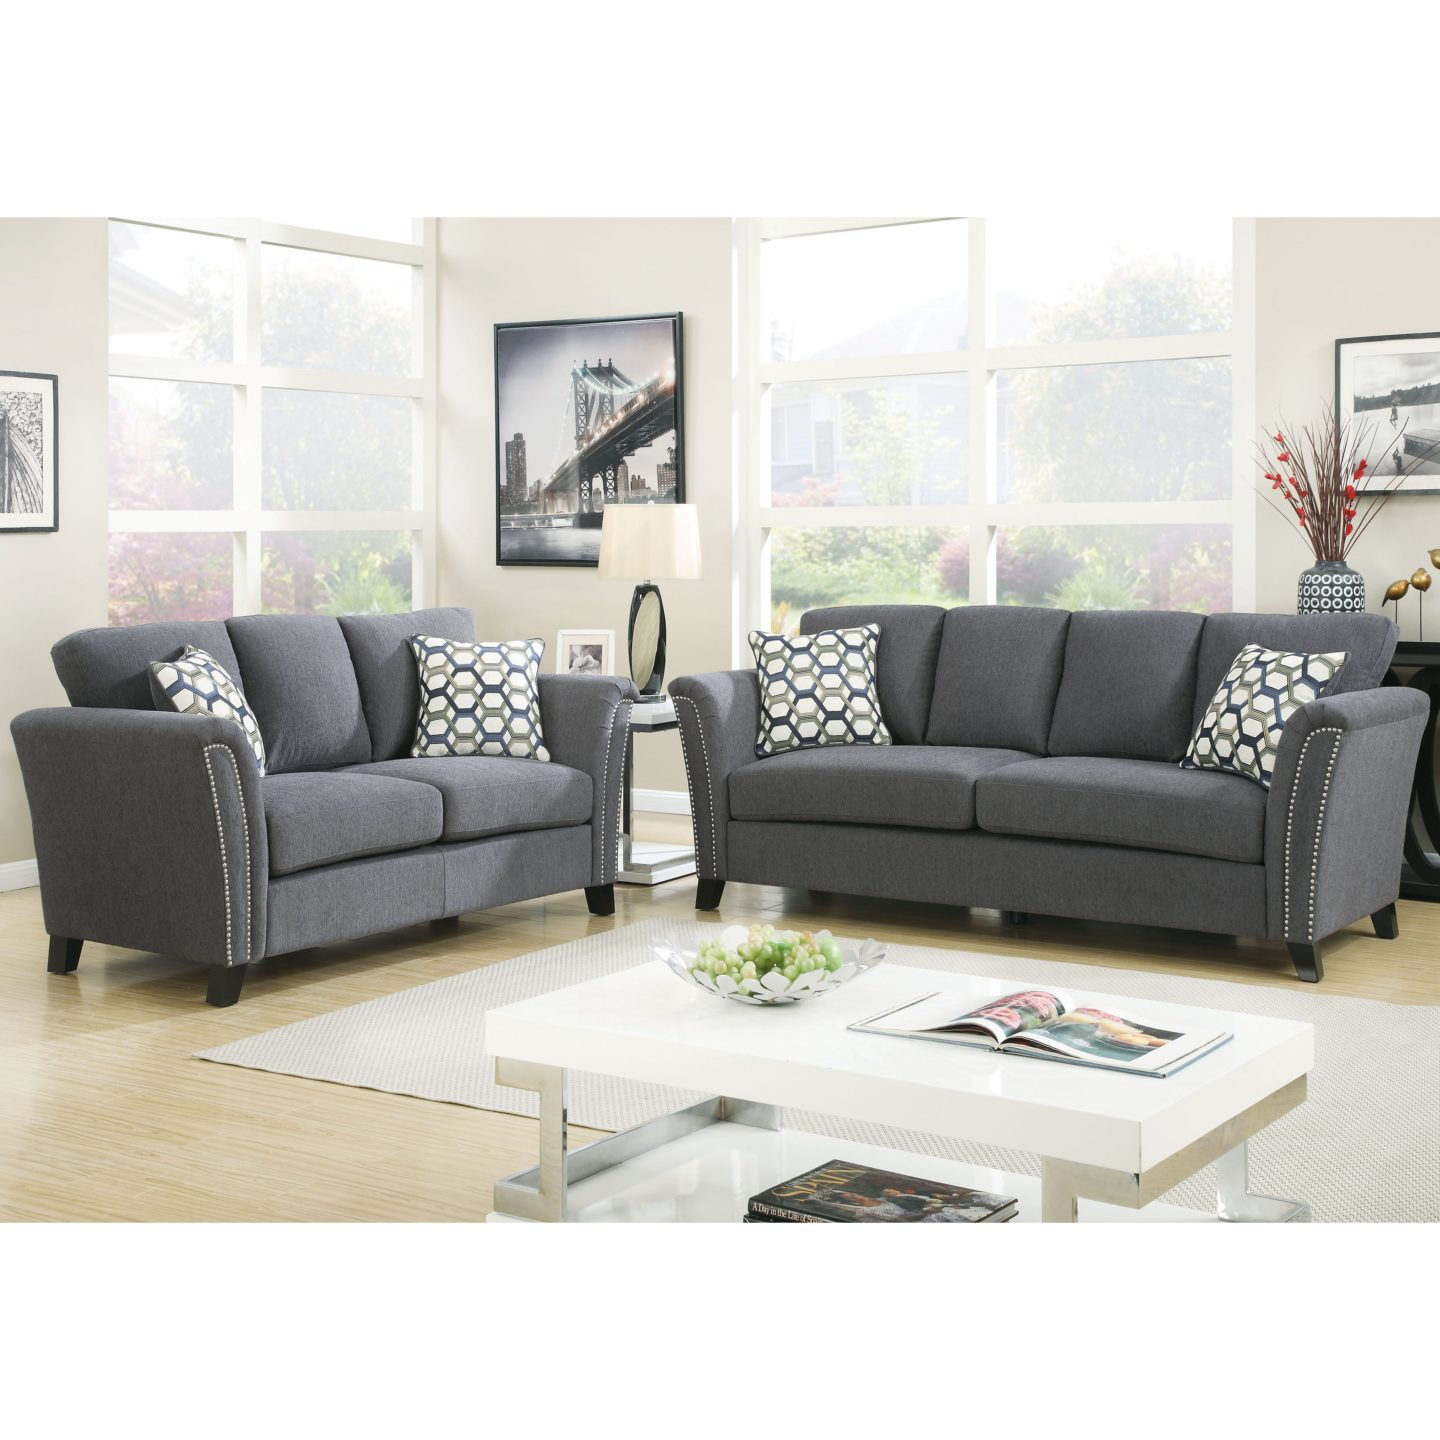 The Top 5 Sofa Styles For Your Home